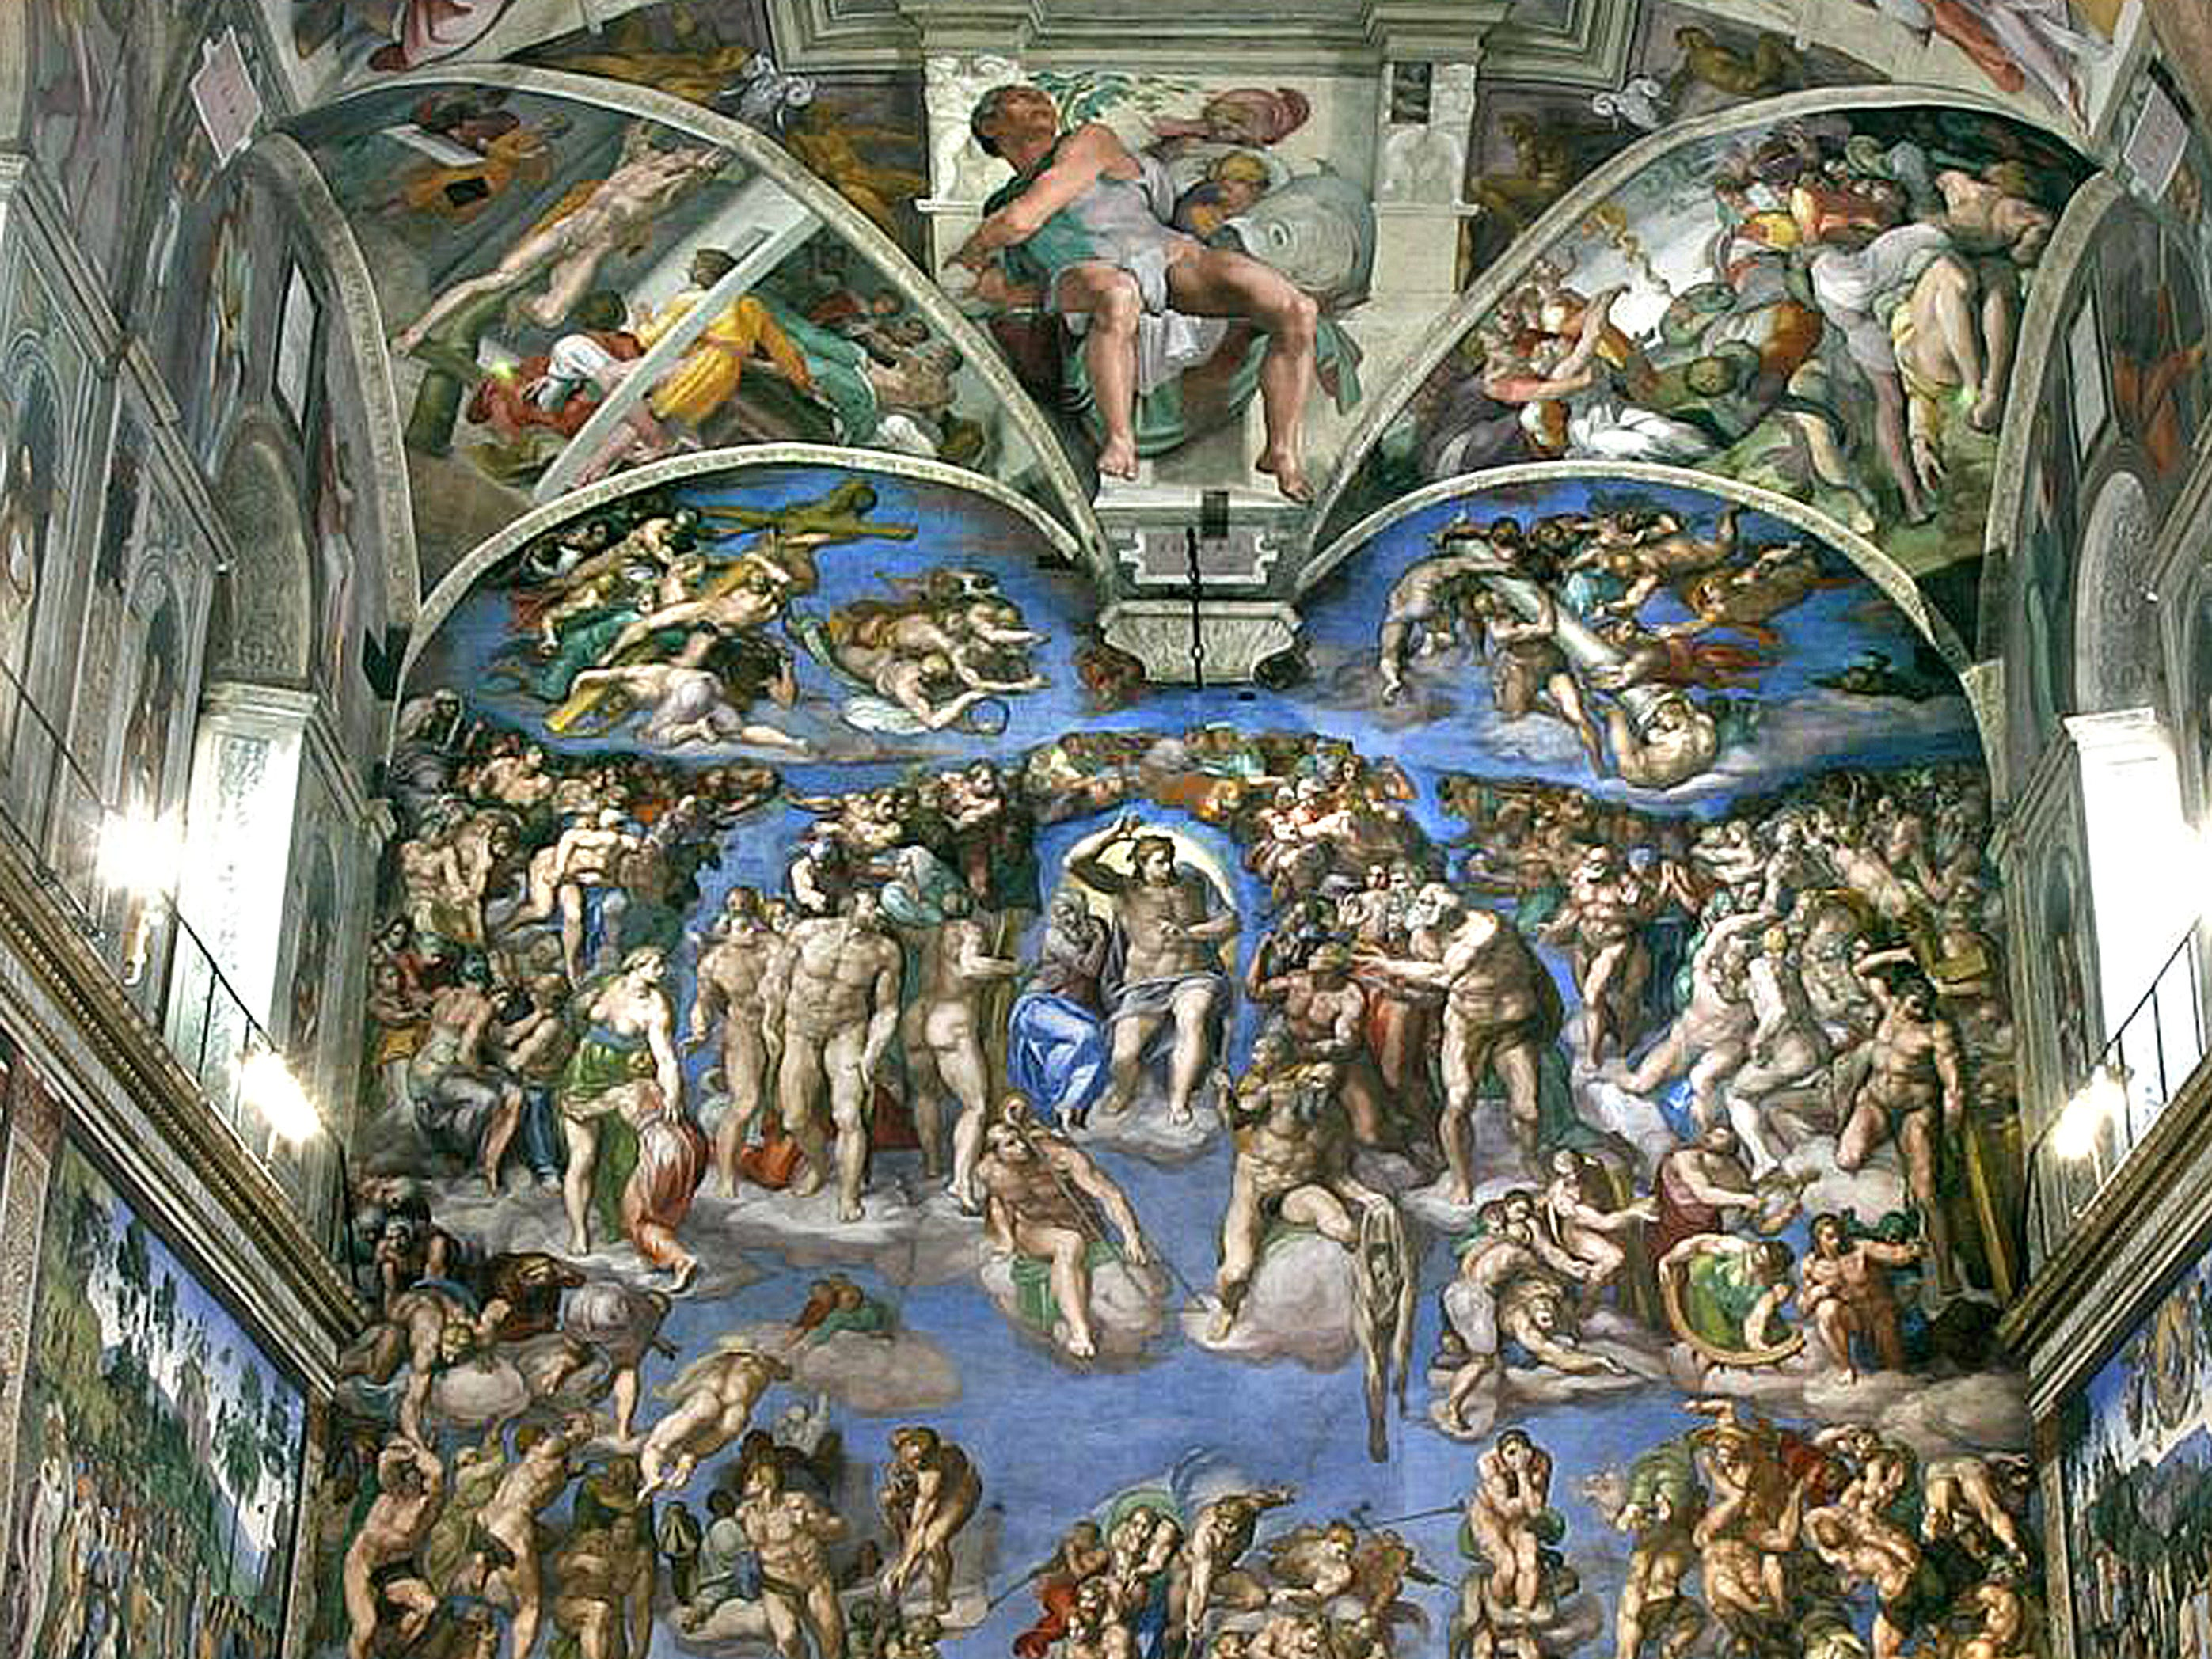 The Sistine Chapel at the Vatican in Rome, Italy. The flashes from cameras can be harmful to the artwork.